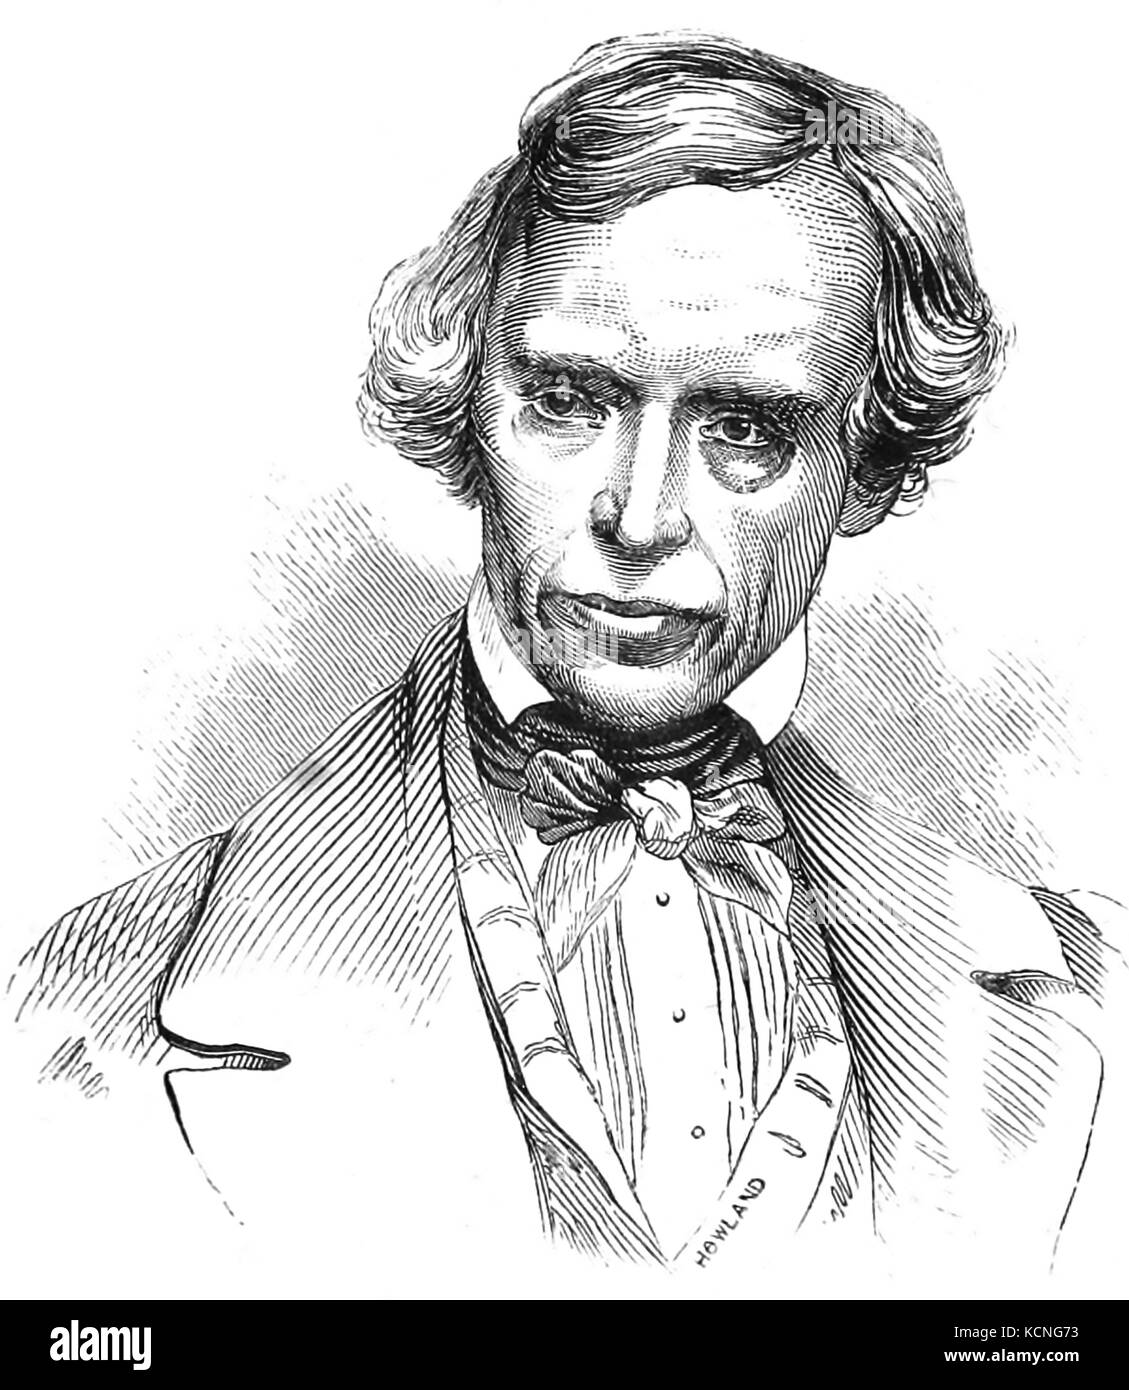 SAMUEL MORSE (1791-1872) American painter and later inventor who co-developed the Morse Code - Stock Image